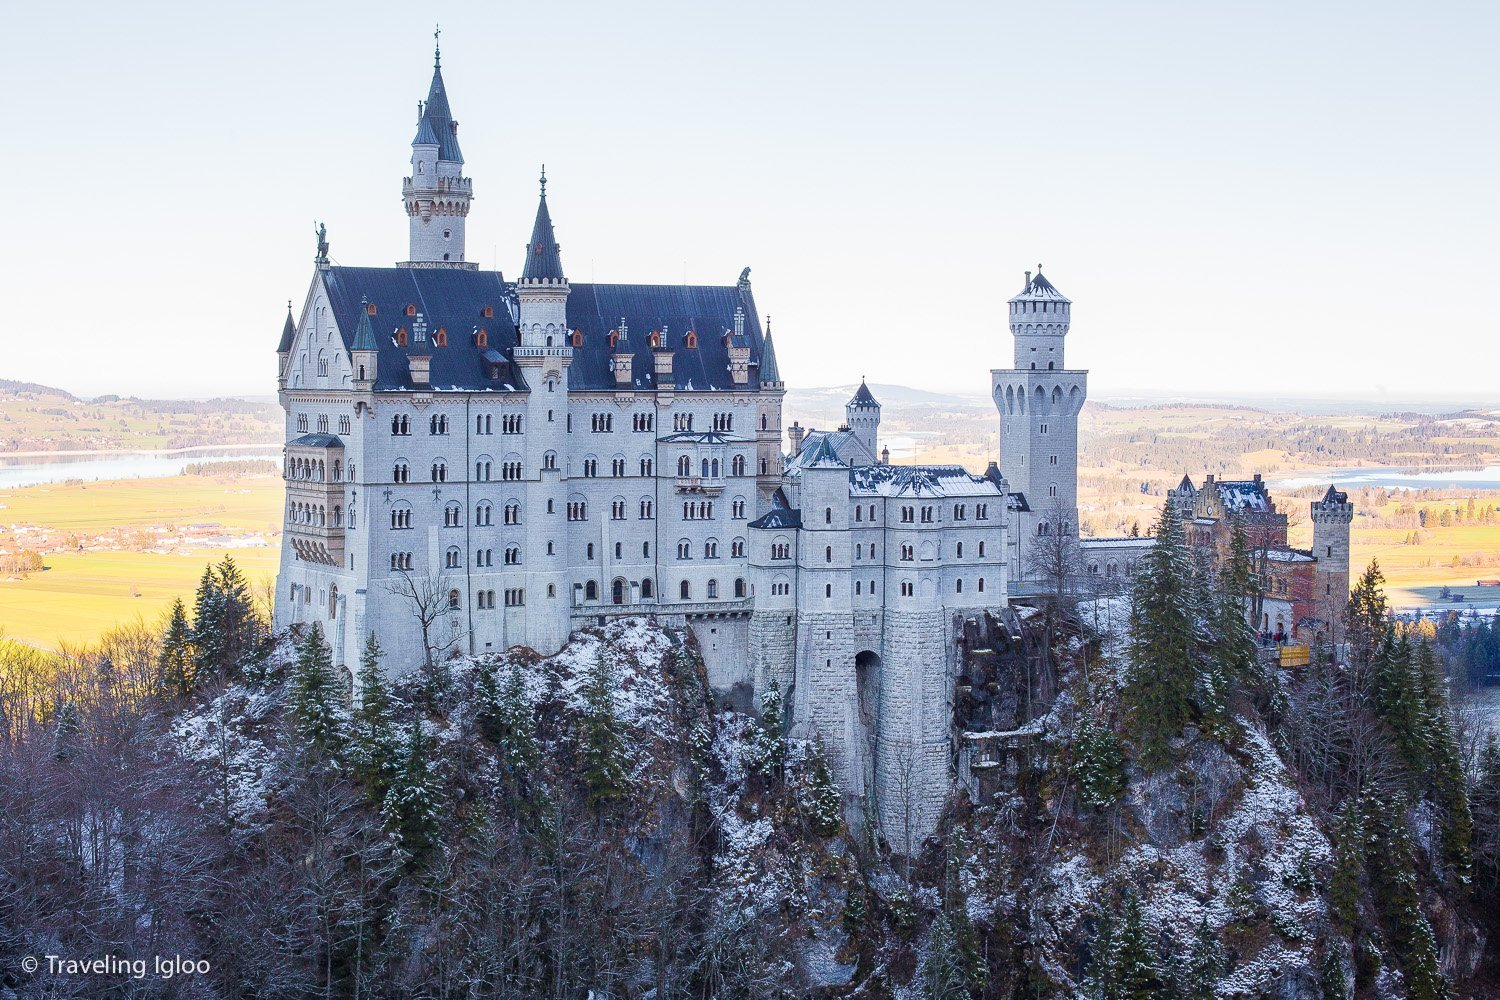 10 Extremely Valuable Neuschwanstein Castle Concepts For Tiny Services